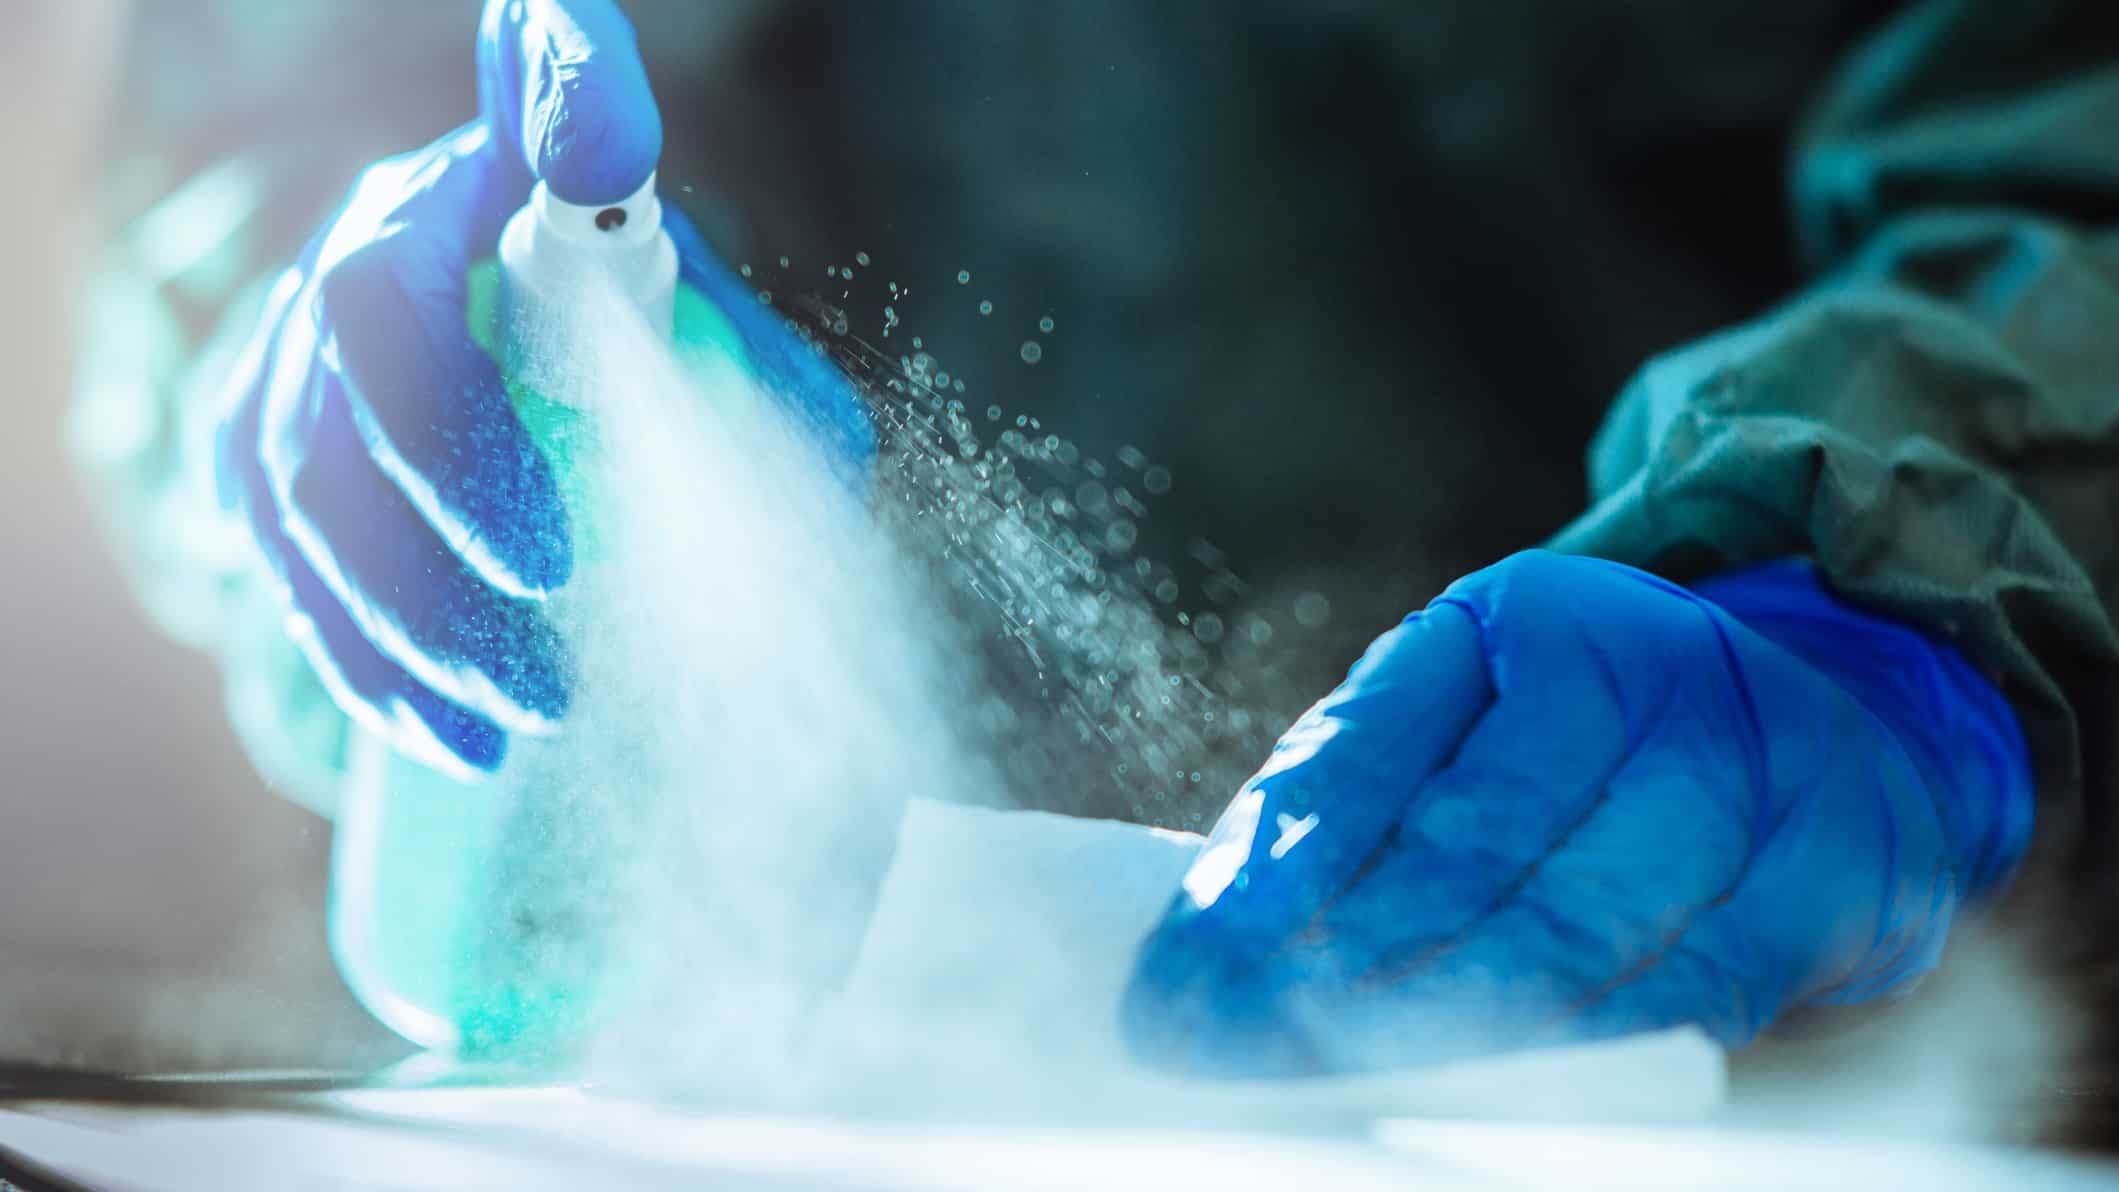 Two hands with gloves spray disinfectant onto a surface, indicating share price movements for ASX biotech companies